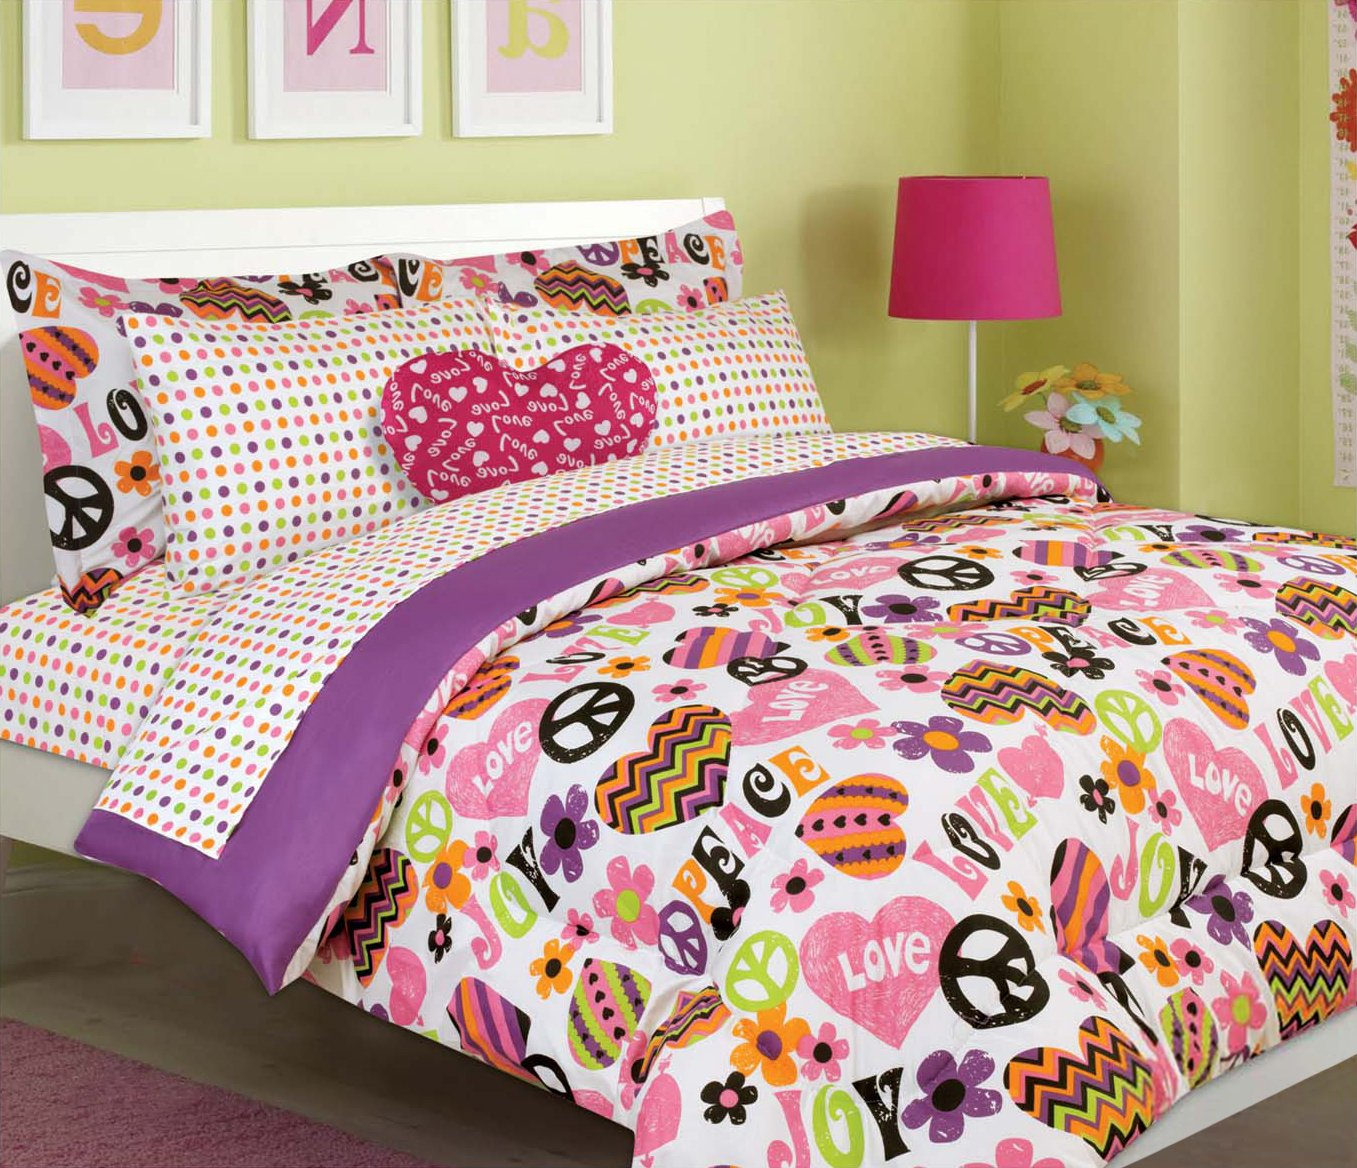 Twin Comforter and Sheet Set, Pink Purple Orange Green Chevron Heart and Peace Sign